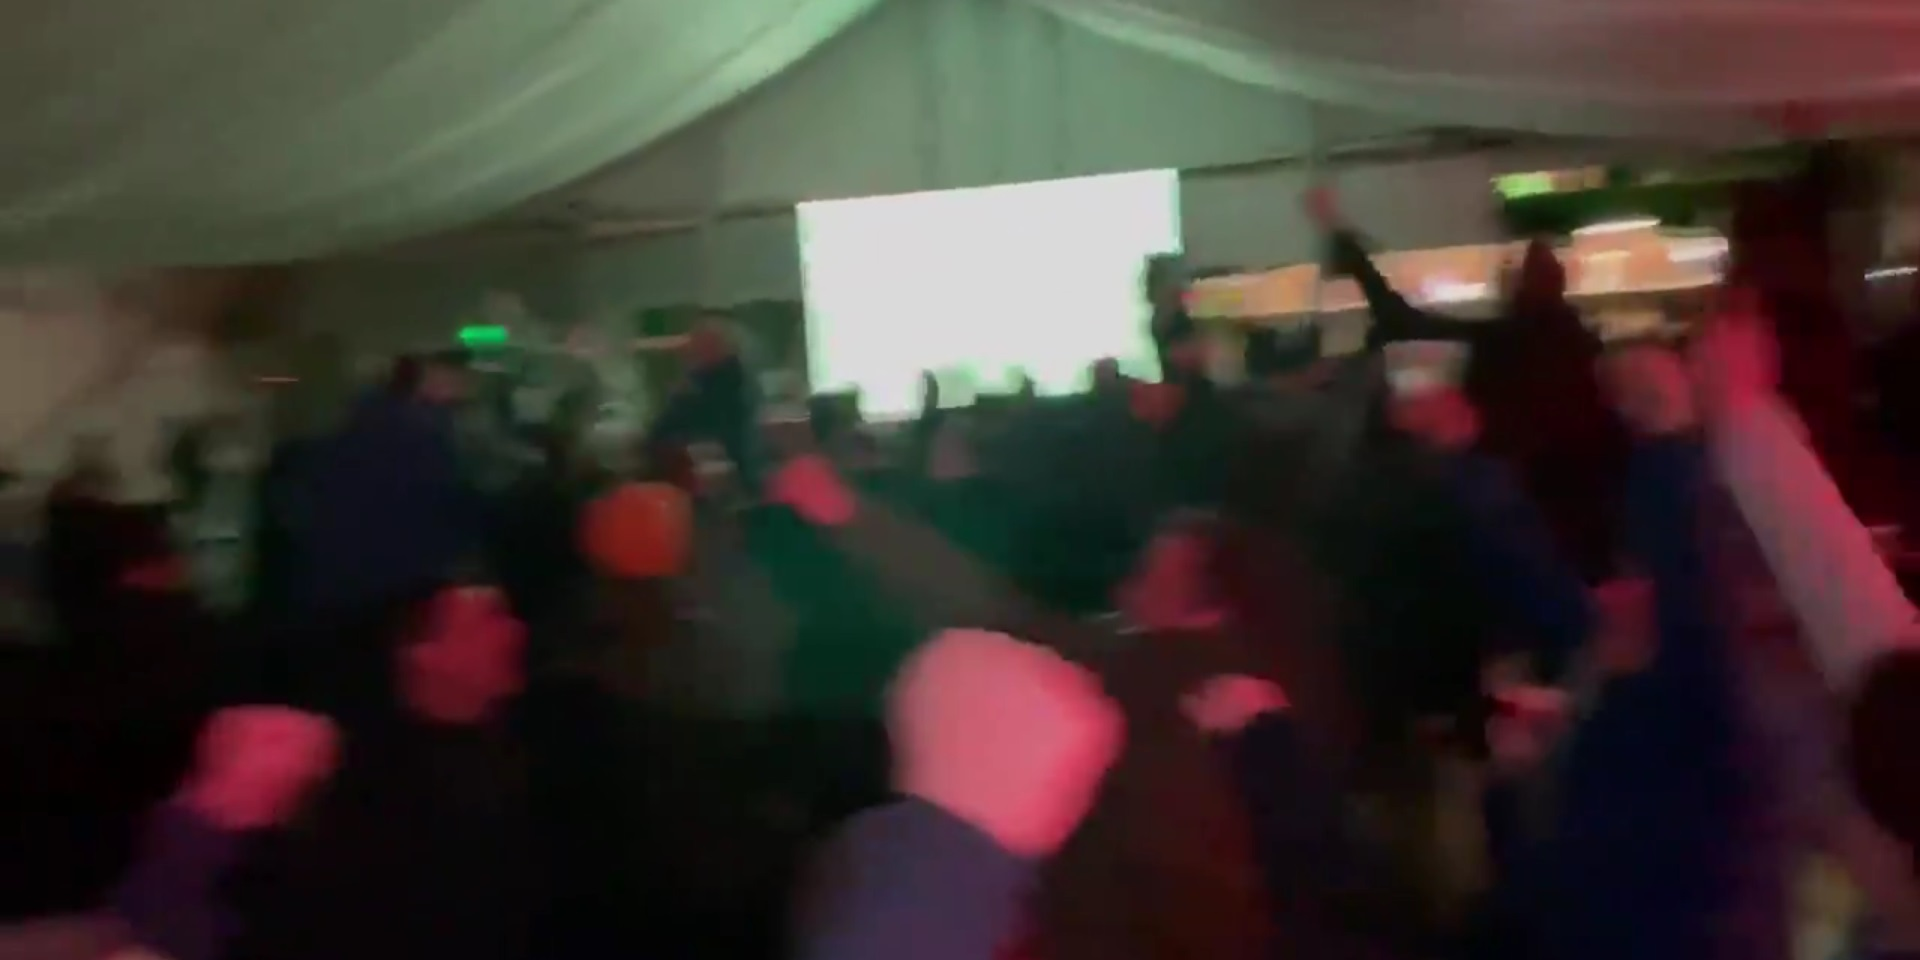 (Video) Liverpool fans explode in celebration as Reds beat Man United at Old Trafford